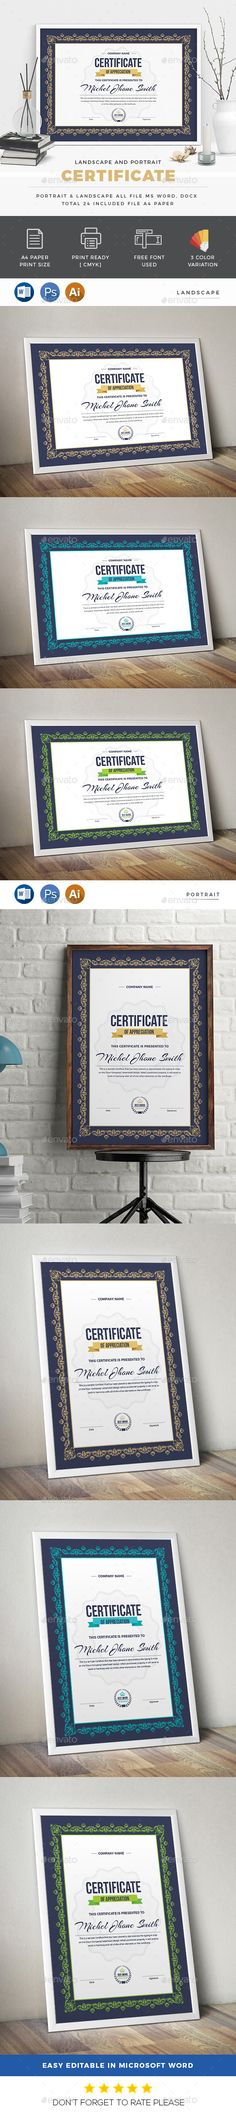 Certificate by generousart Features of Certificate Template 3 Color Paper Size With Bleeds Quick and easy to customize templatesChange Customize e Stencil Templates, Print Templates, Design Templates, Certificate Design, Certificate Templates, Stationery Templates, Stationery Design, A4 Paper, Paper Size